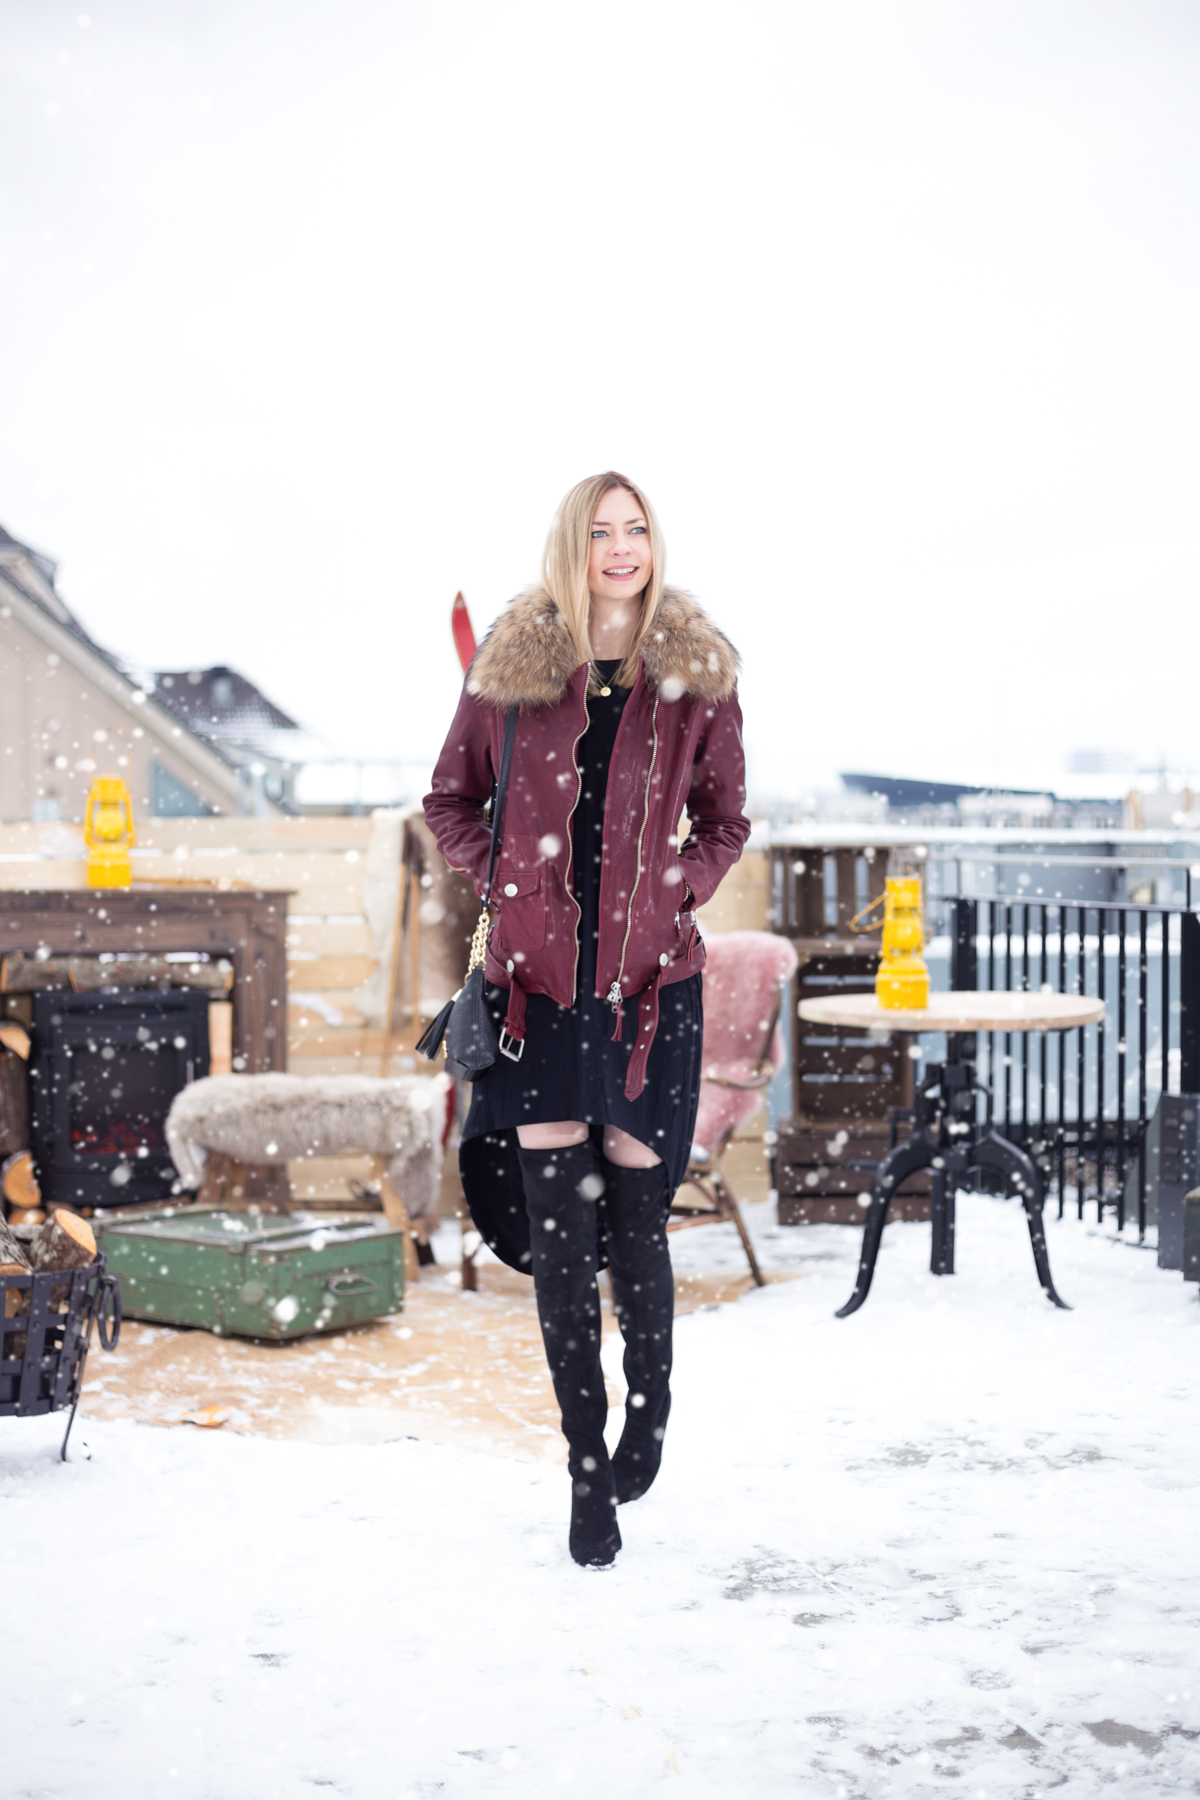 Red Leather & Snow I MBFW Berlin I How I met my outfit by Dana Lohmüller